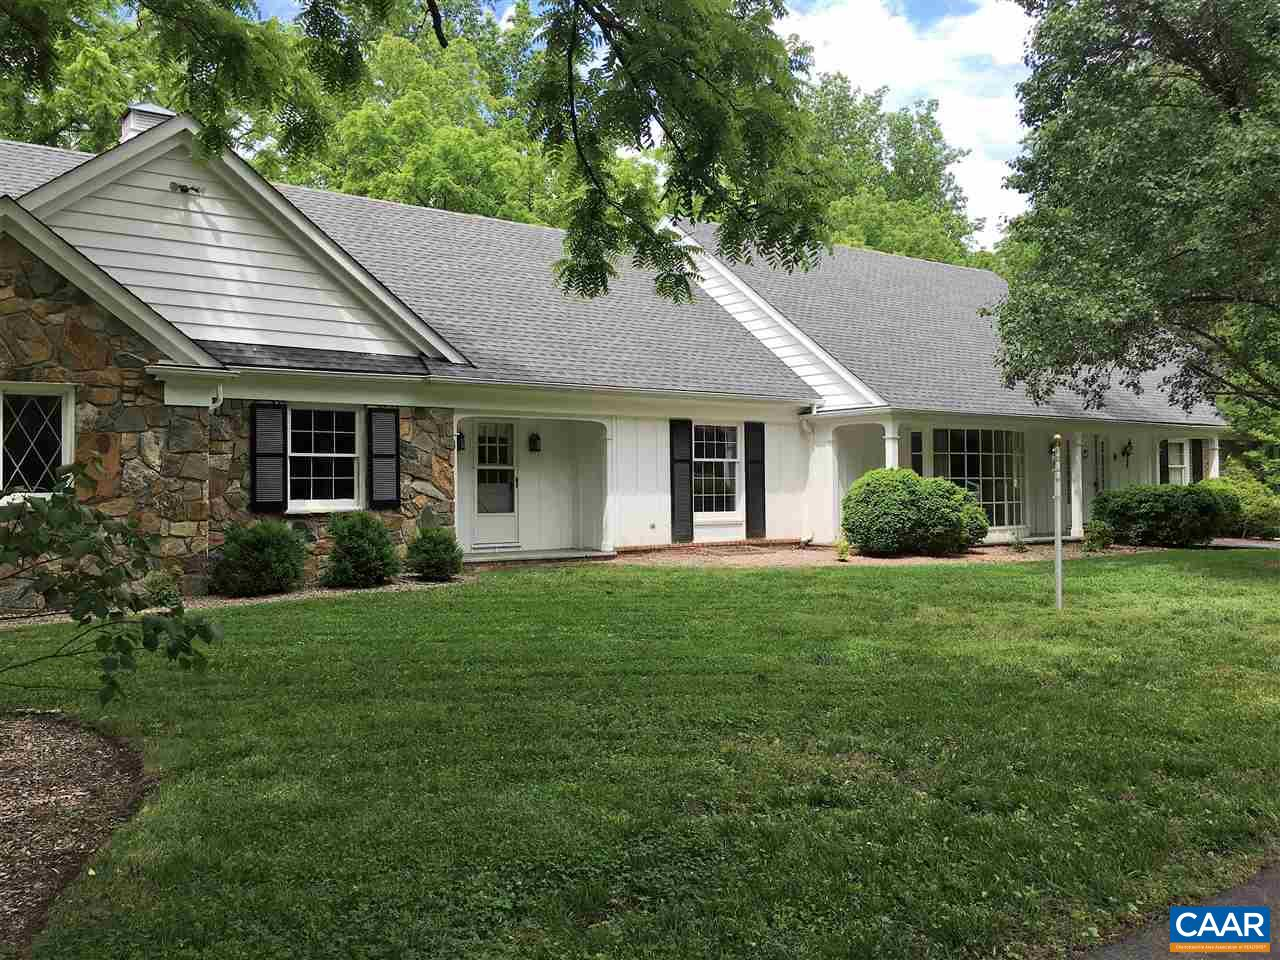 home for sale , MLS #563051, 6904 James Madison Hwy